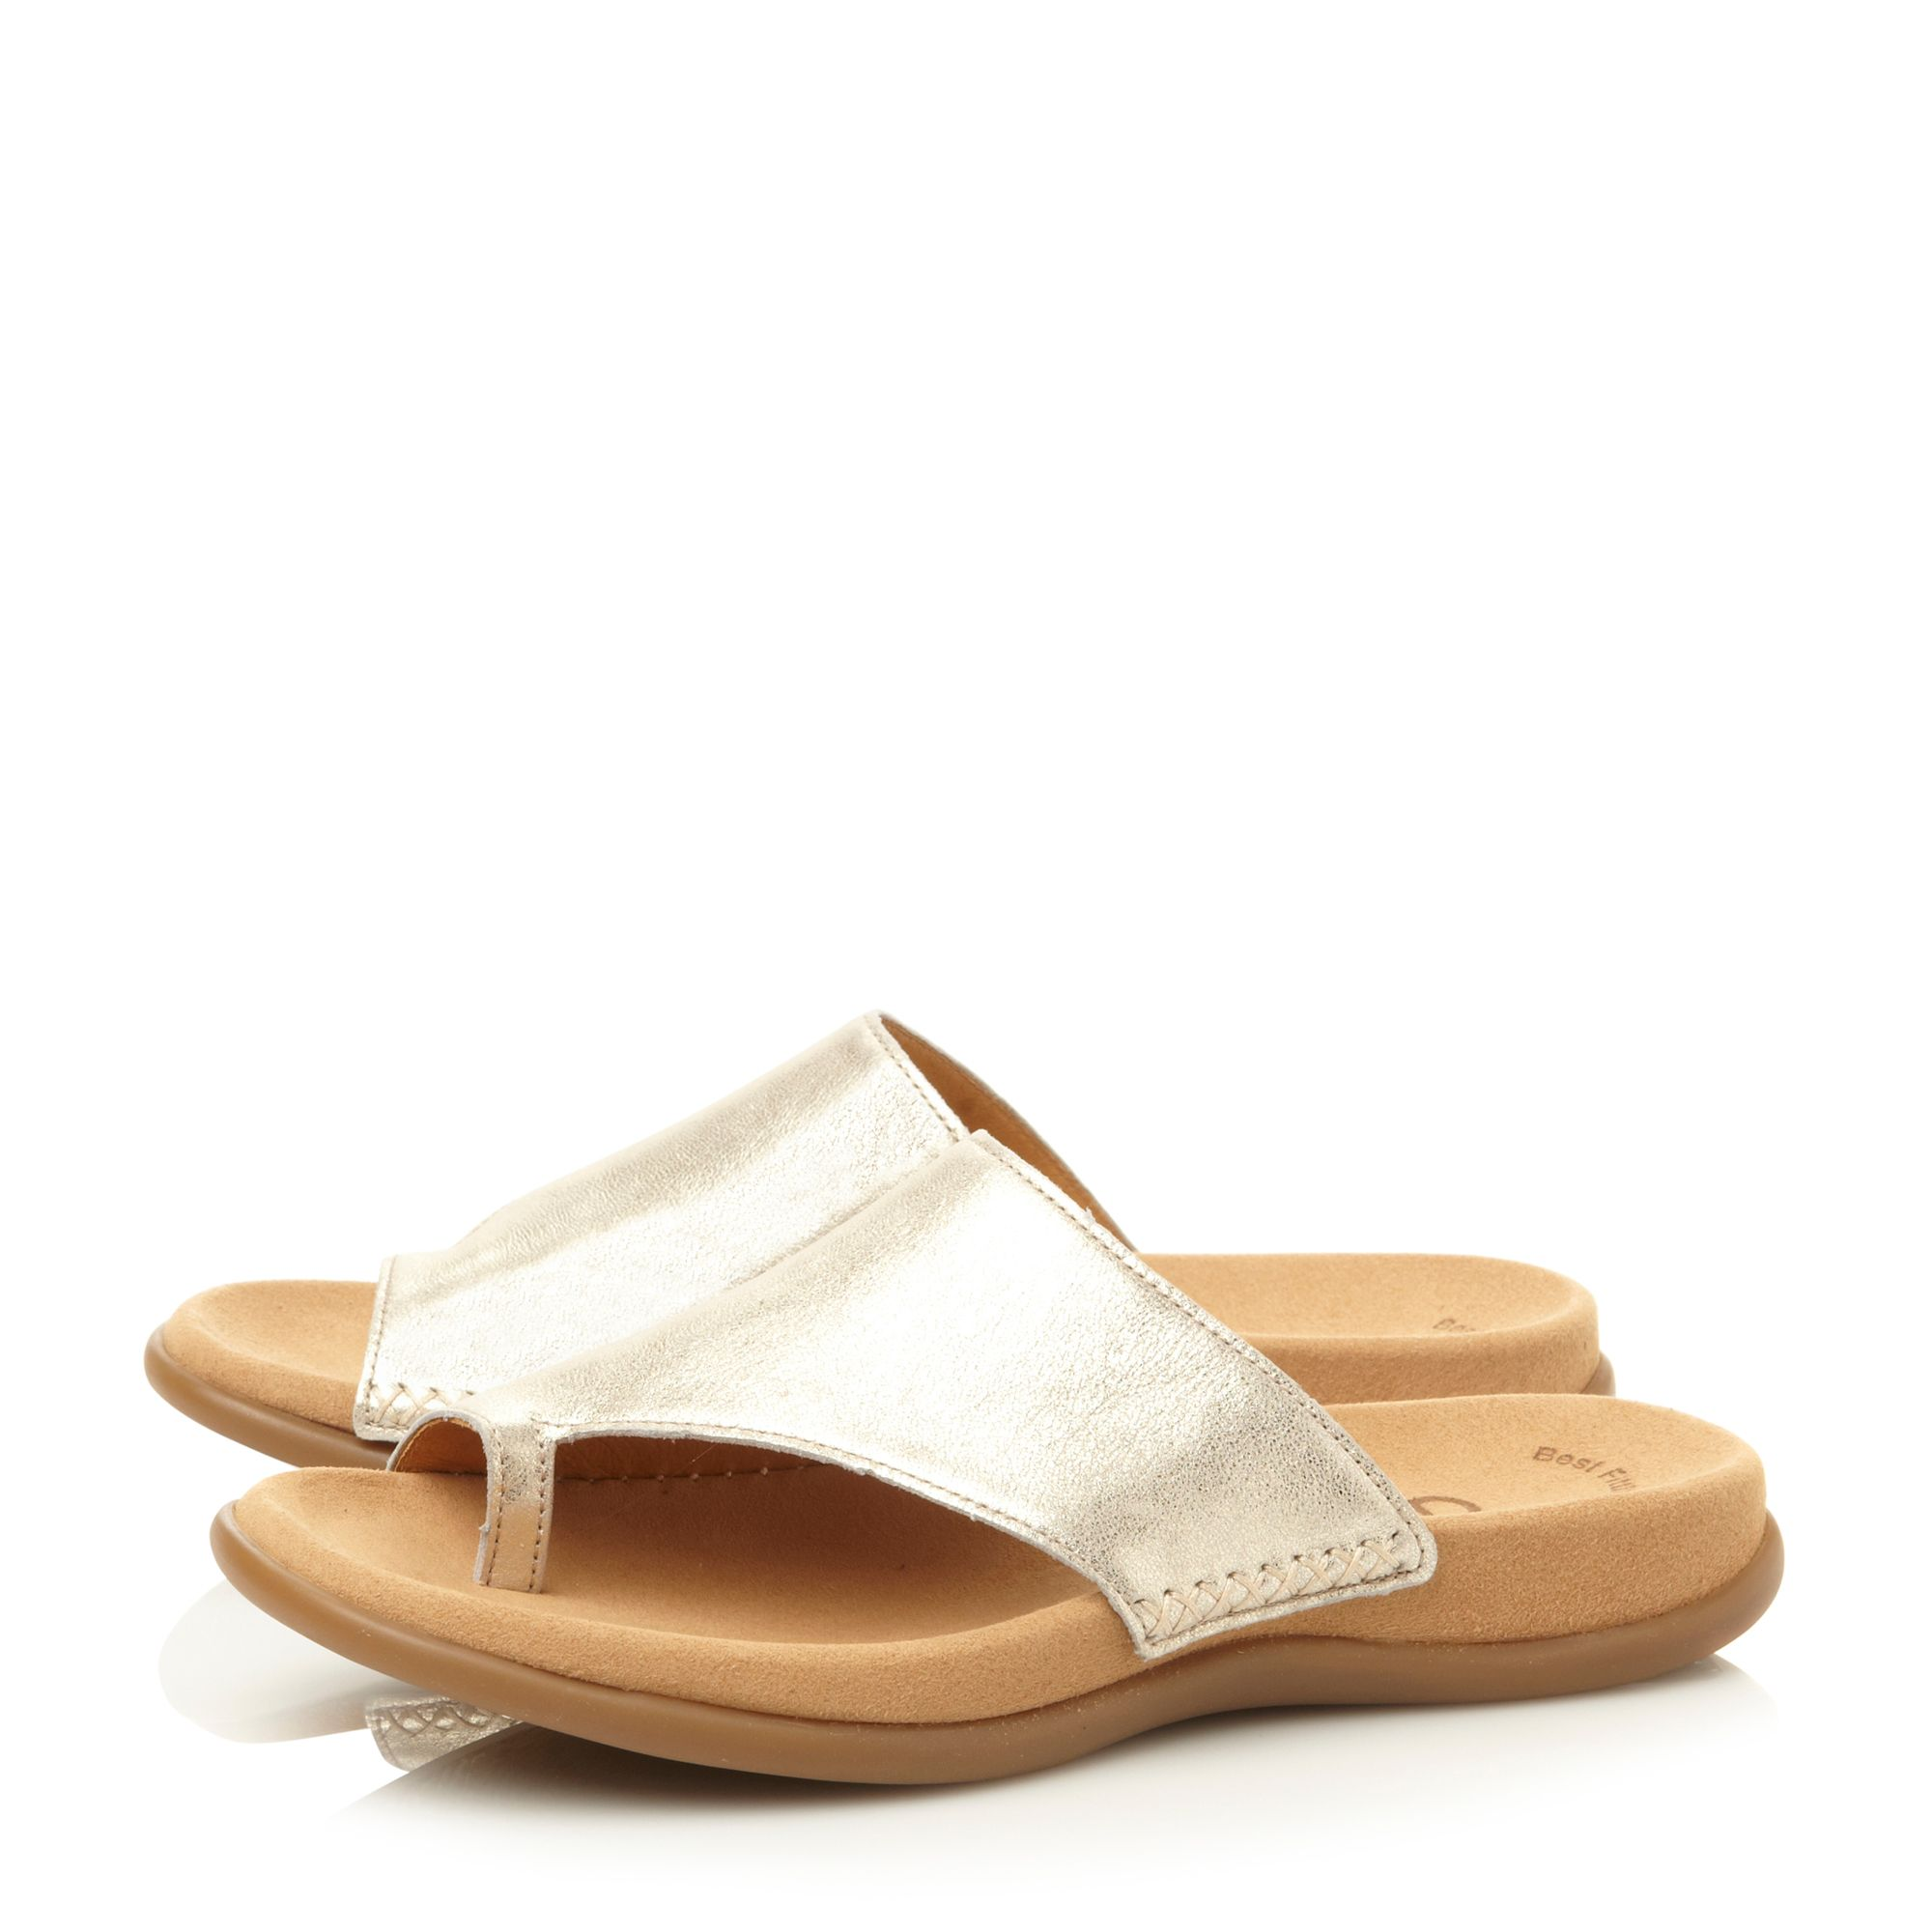 Lanzarote round toe loop footbed sandals